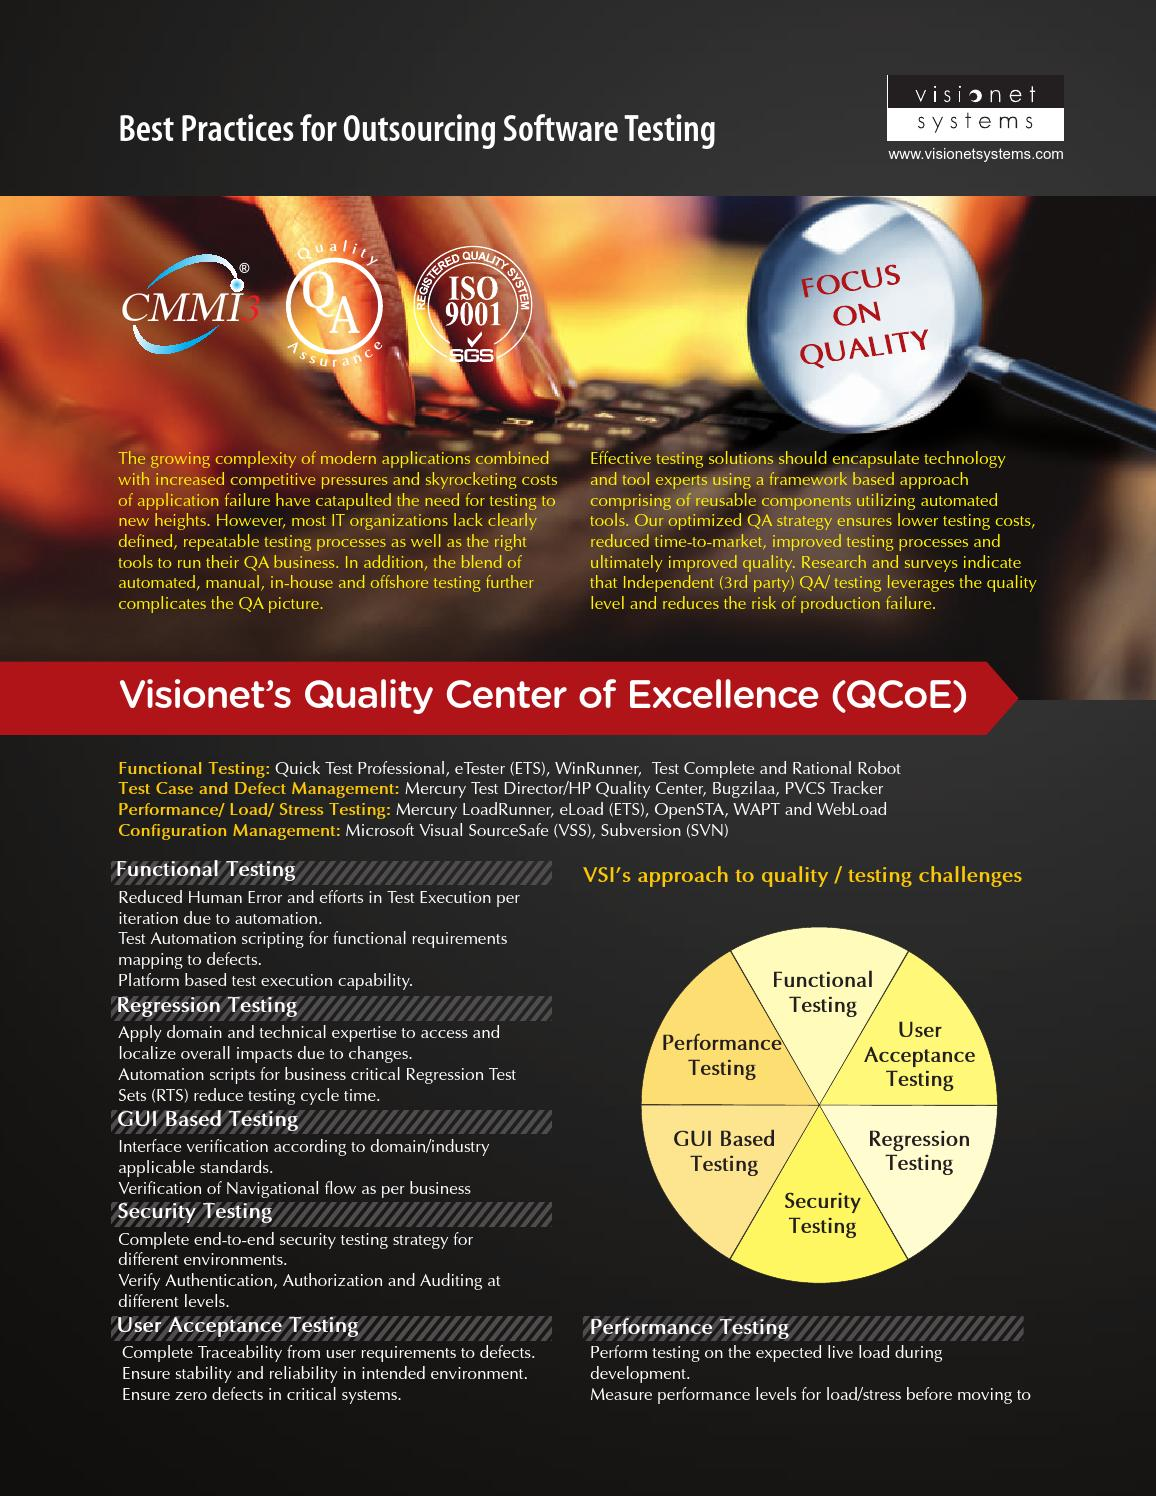 Visionet\'s Quality Center of Excellence (QCoE) - Best Practices for ...